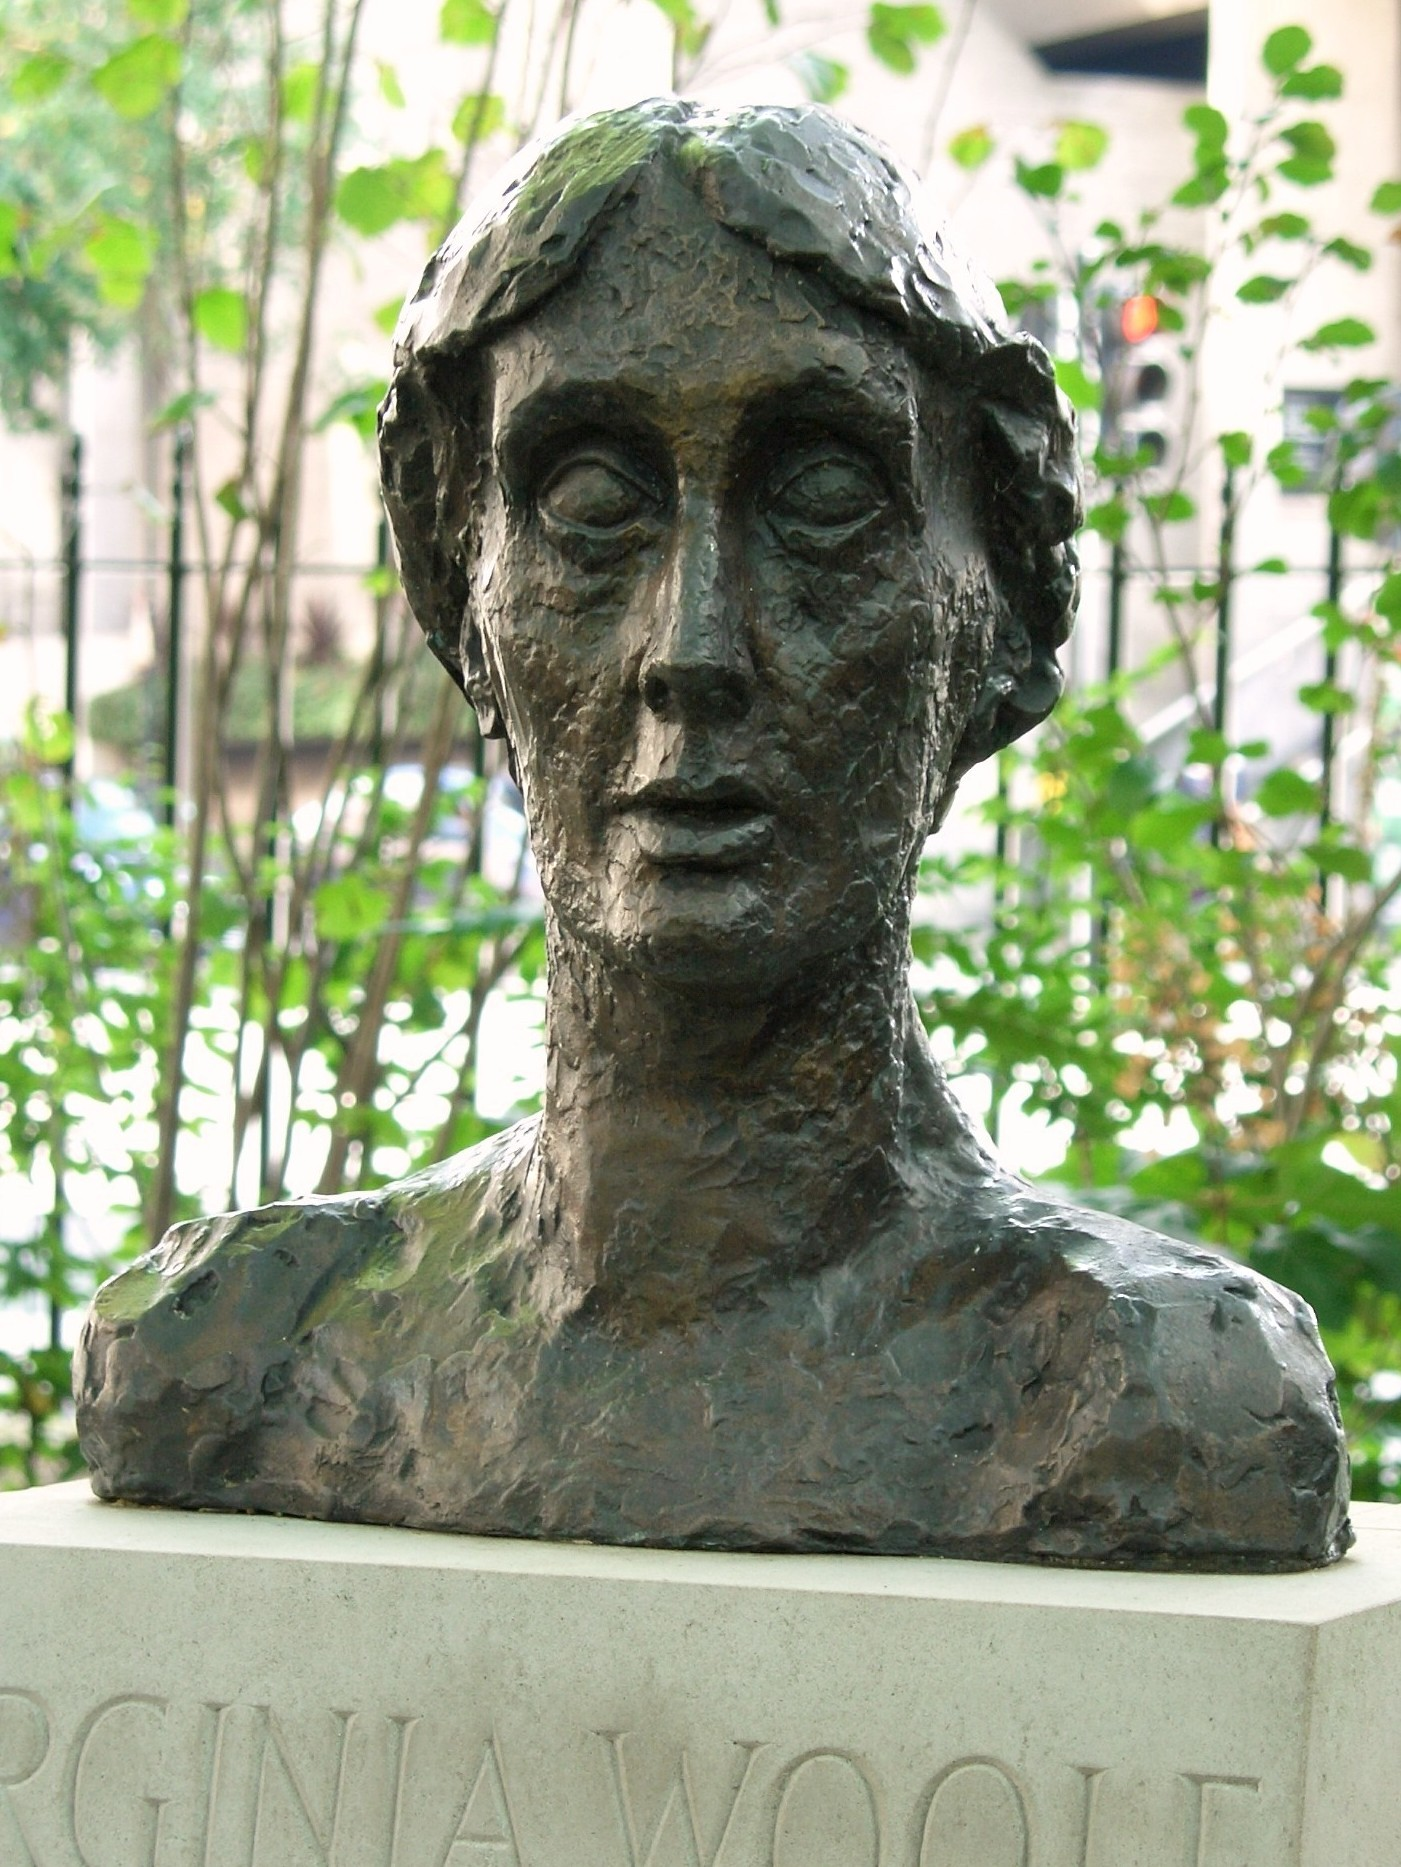 Three Pictures by Virginia Woolf